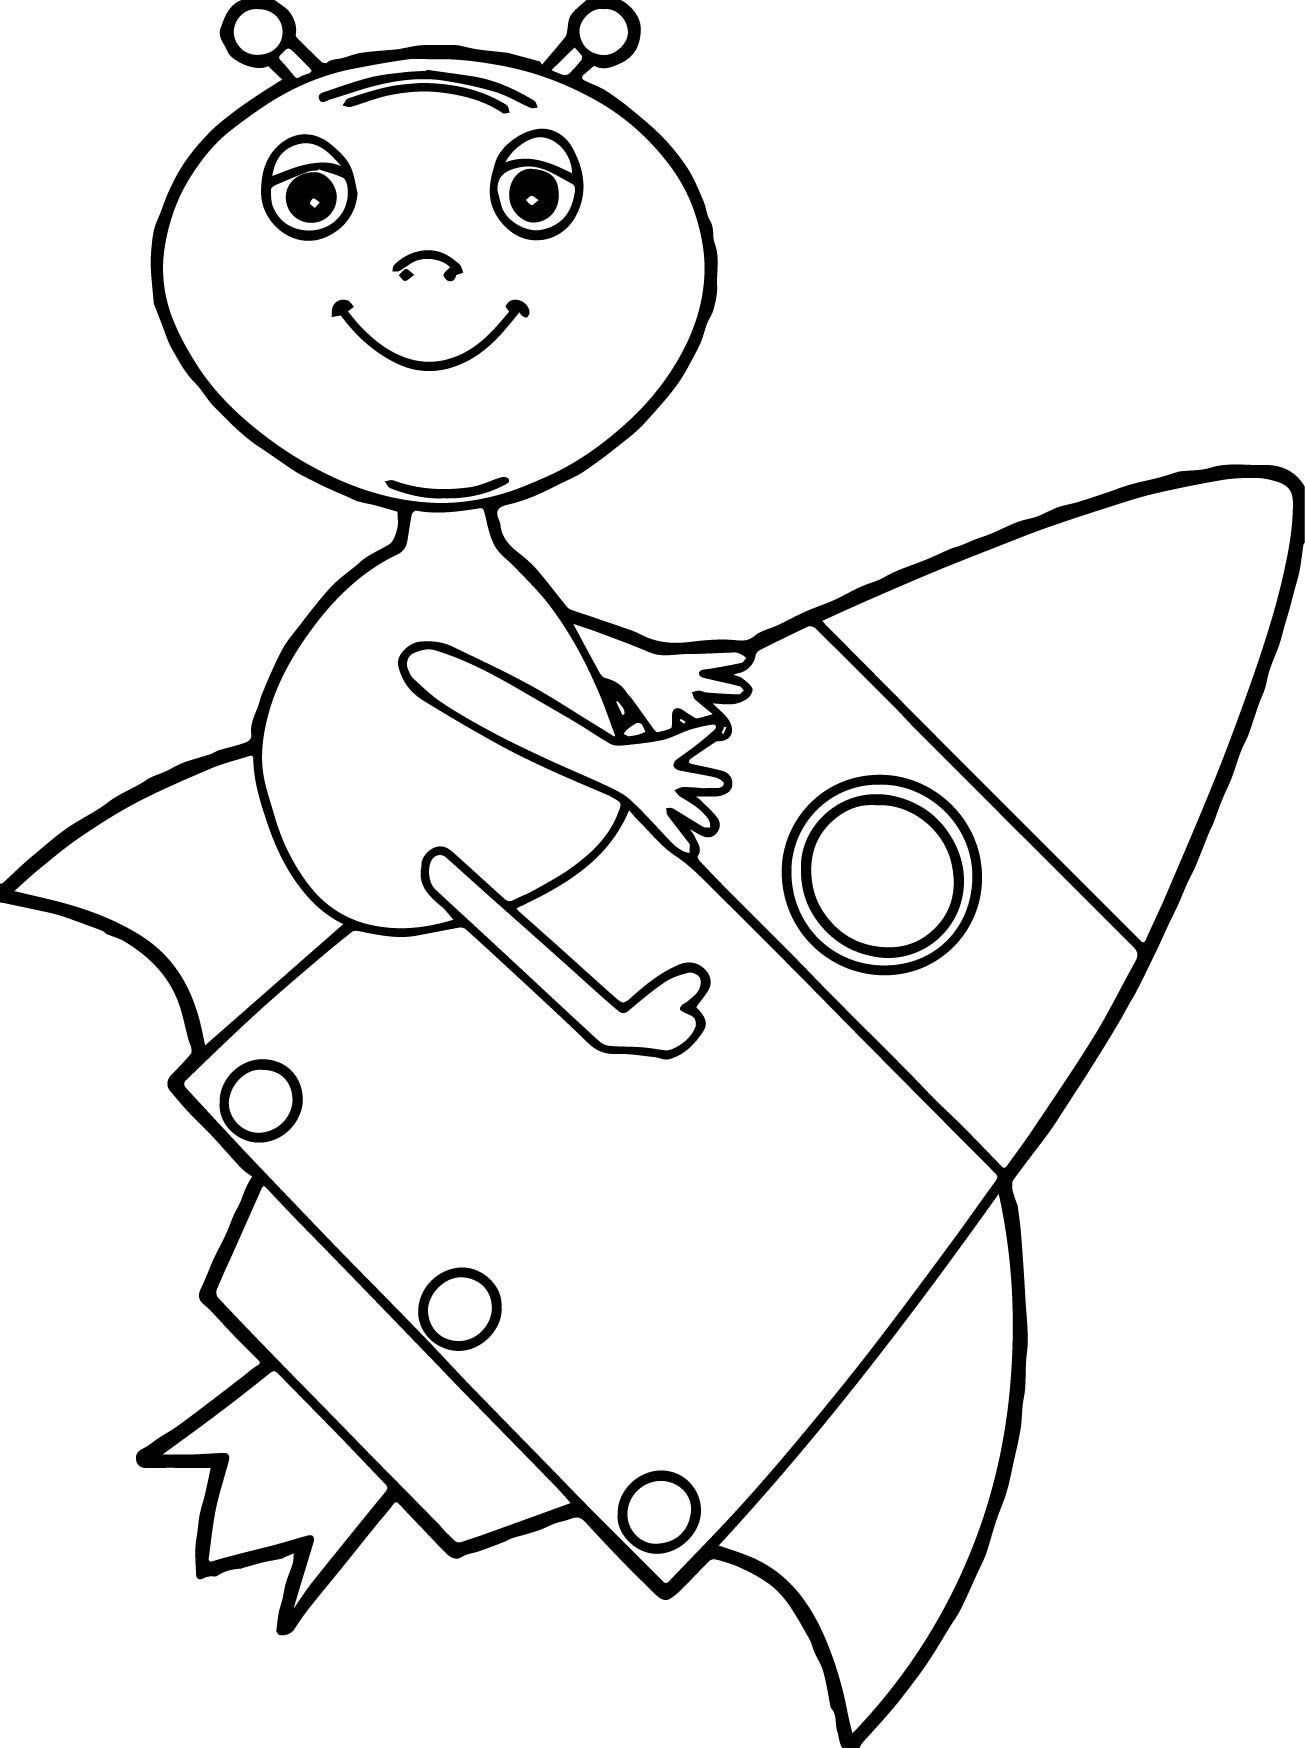 Cool alien drawing rocket coloring page wecoloringpage pinterest